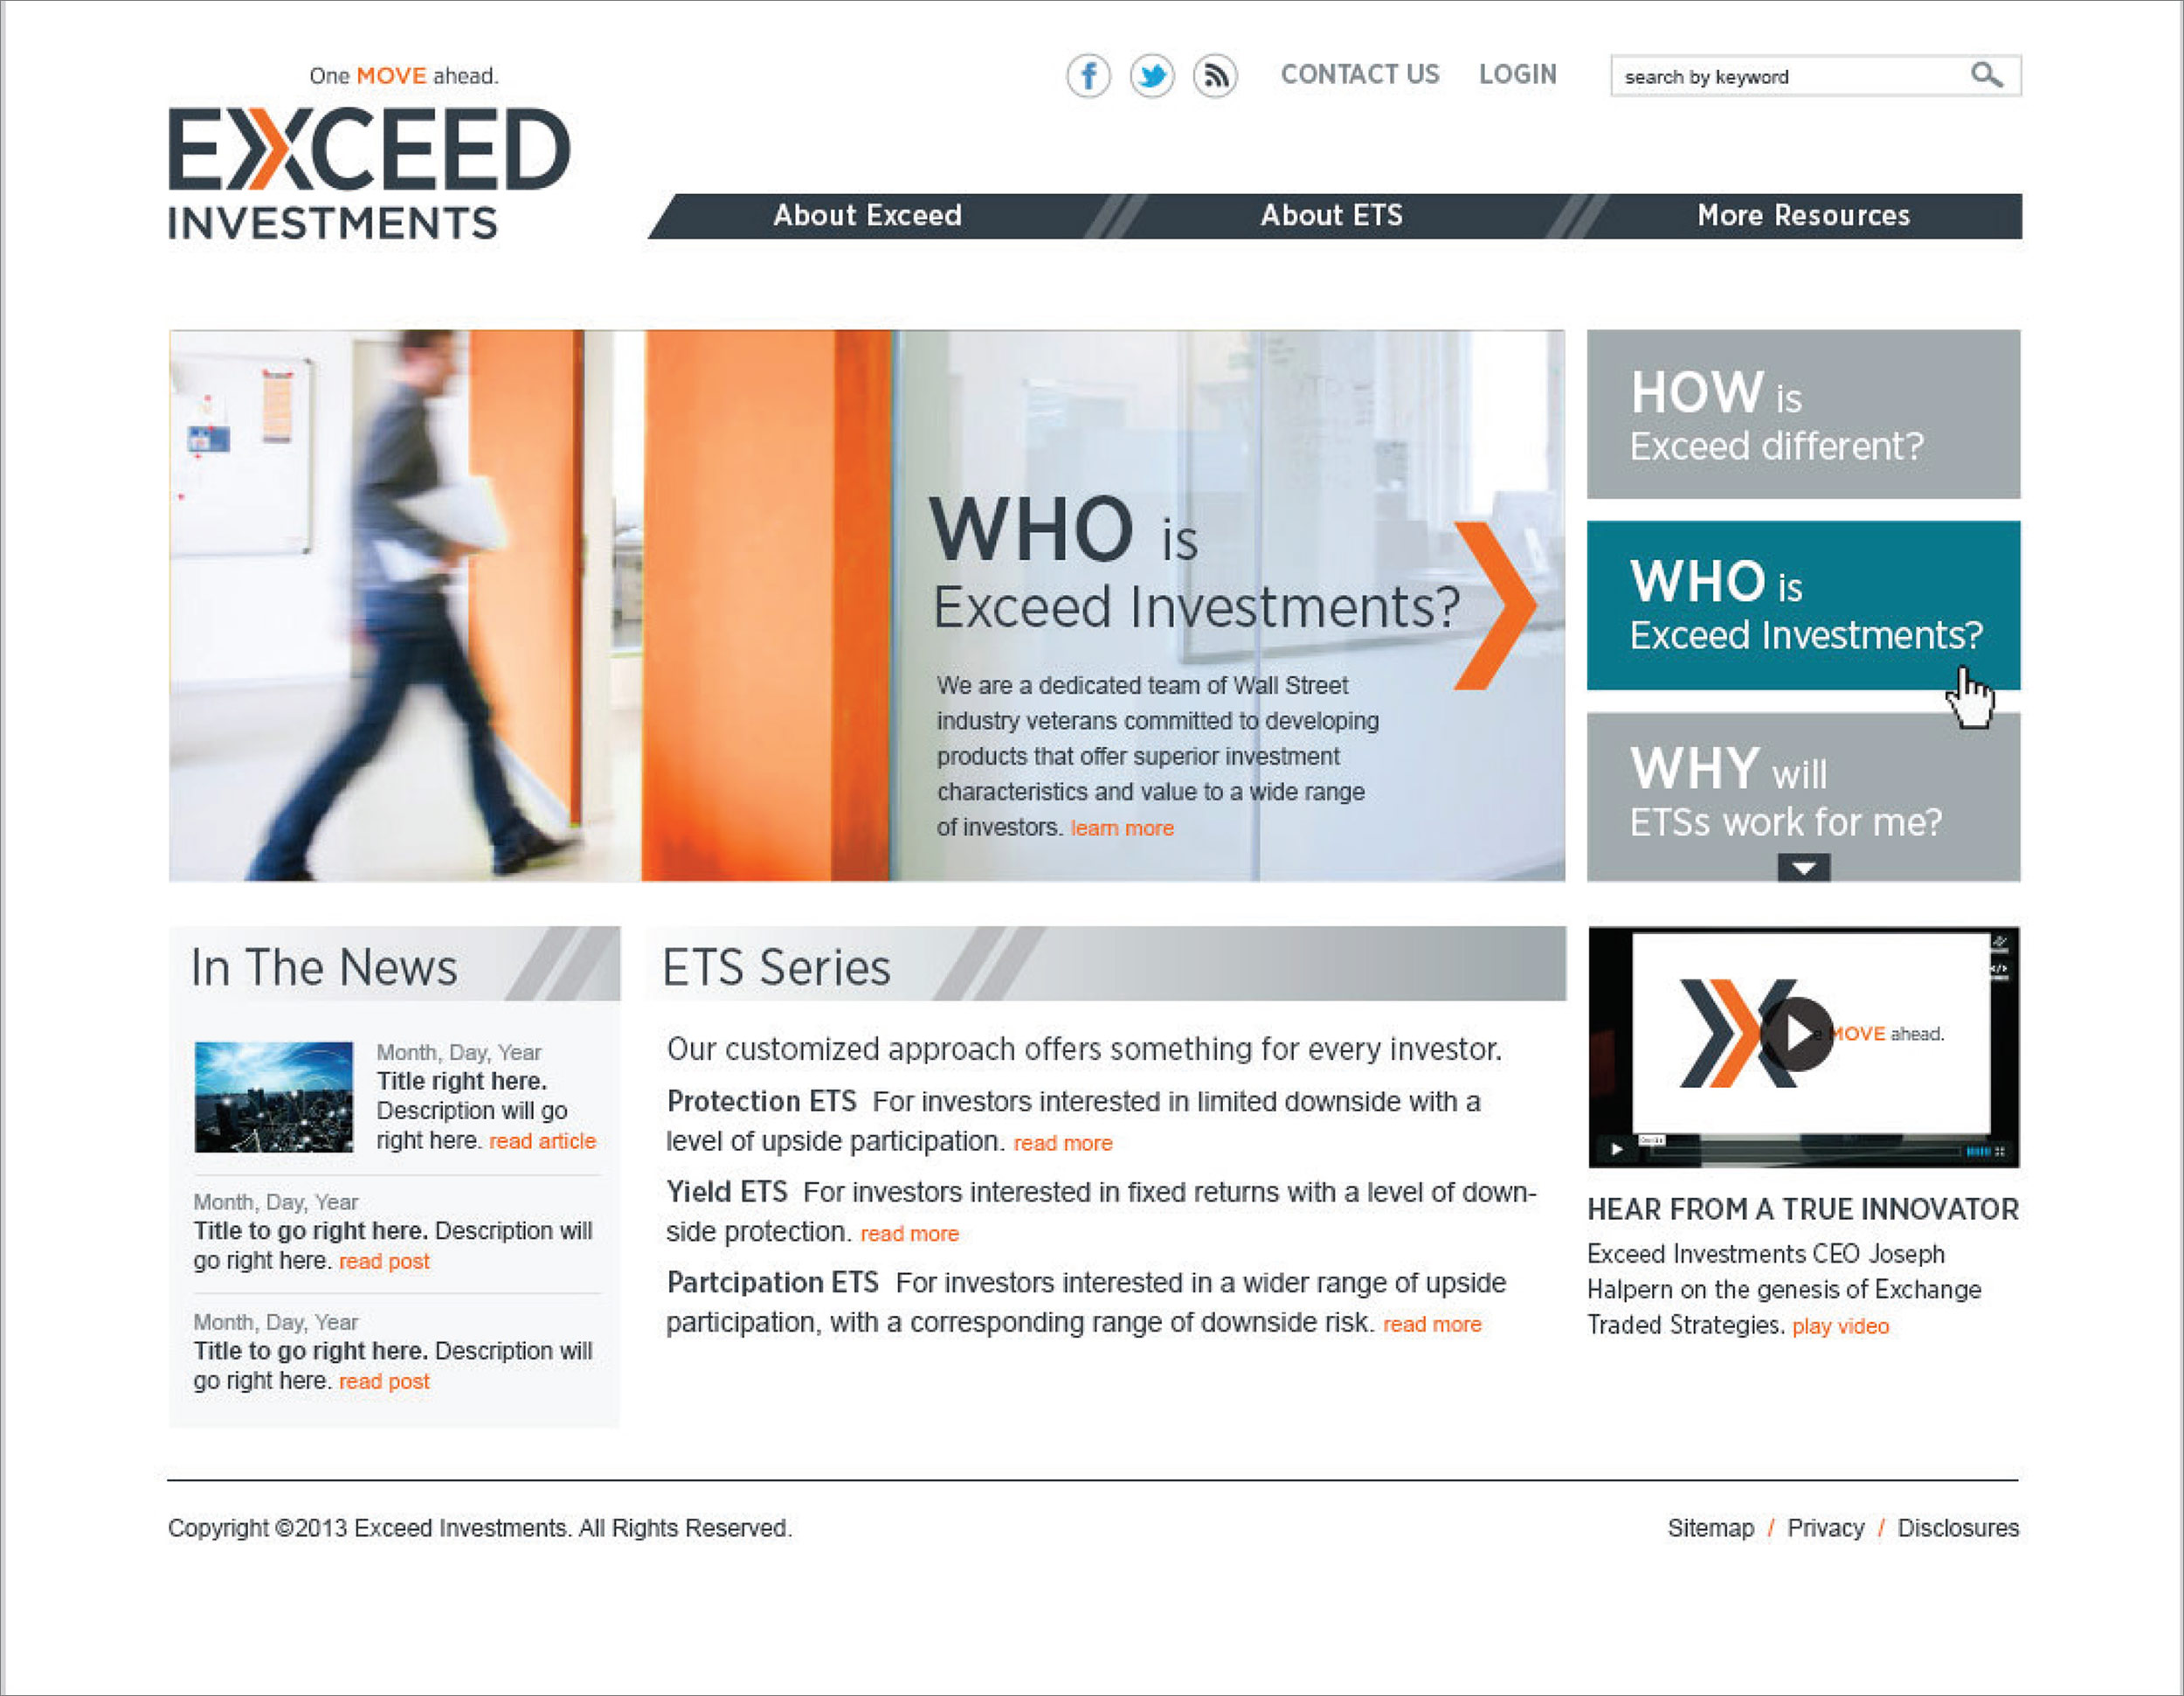 EXCEED INVESTMENTS   MARKETING STRATEGY / BRAND POSITIONING / NAMING / NOMENCLATURE / VISUAL IDENTITY / CONTENT STRATEGY / WEB DESIGN / WEB DEVELOPMENT / IMAGERY / SALES & MARKETING COLLATERAL / MARKETING & TECHNOLOGY SUPPORT